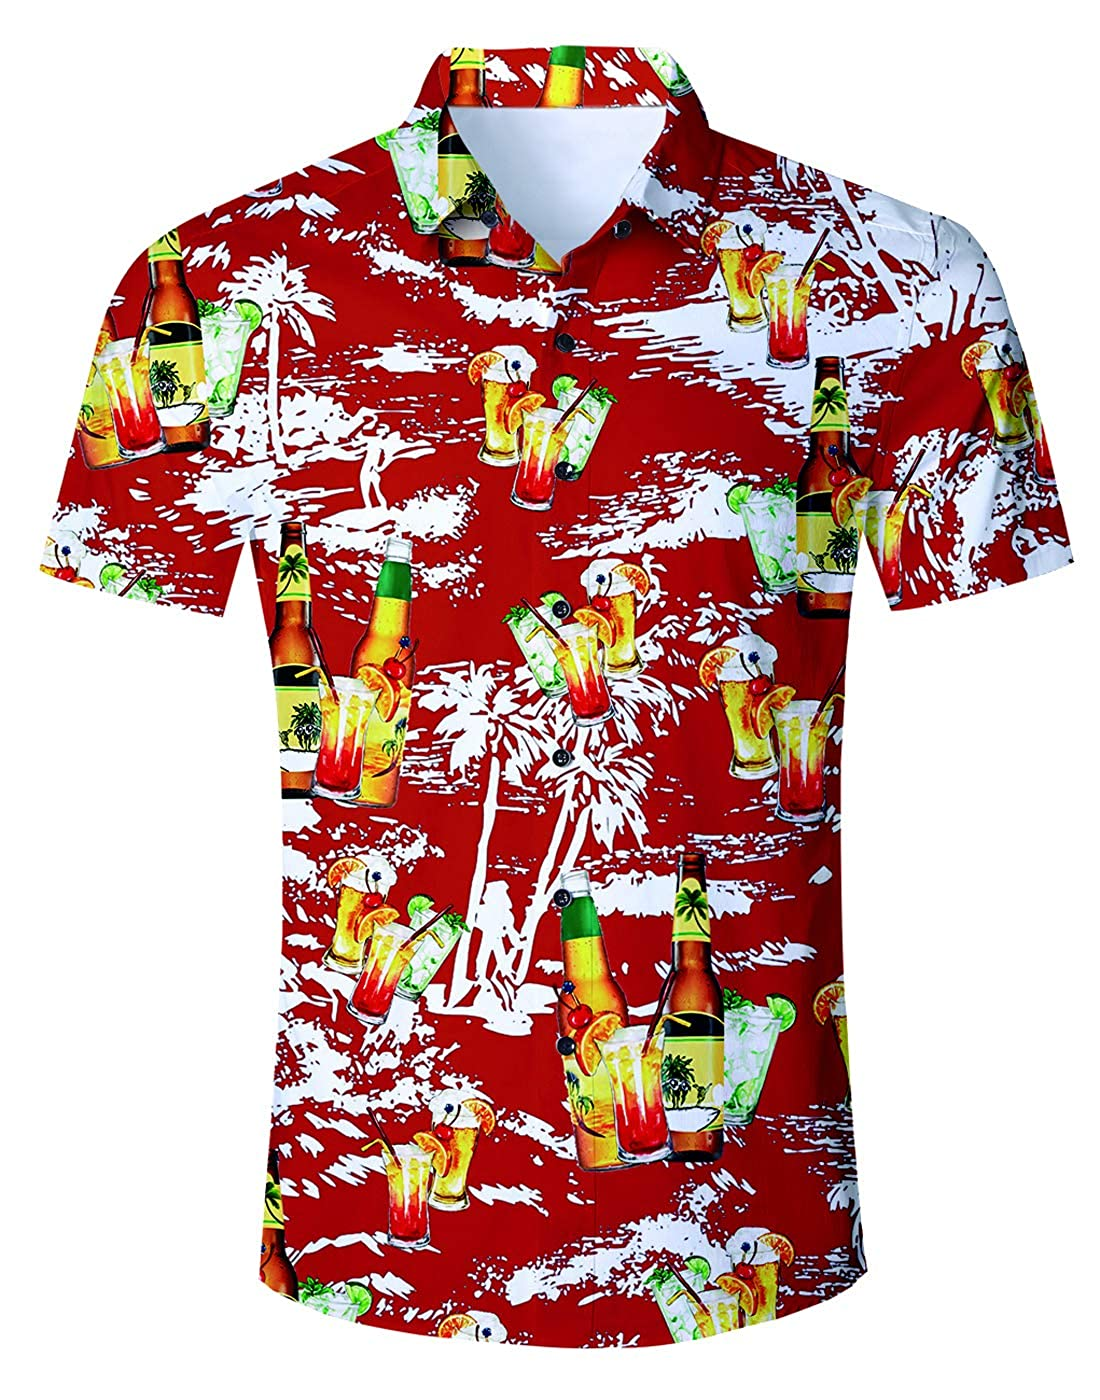 6f175611aae PATTERN 3D print technology gives it cleanly print and makes hawaiian luau  shirt never fade. ALL MATCH These Aloha shirts are suitable for all  age